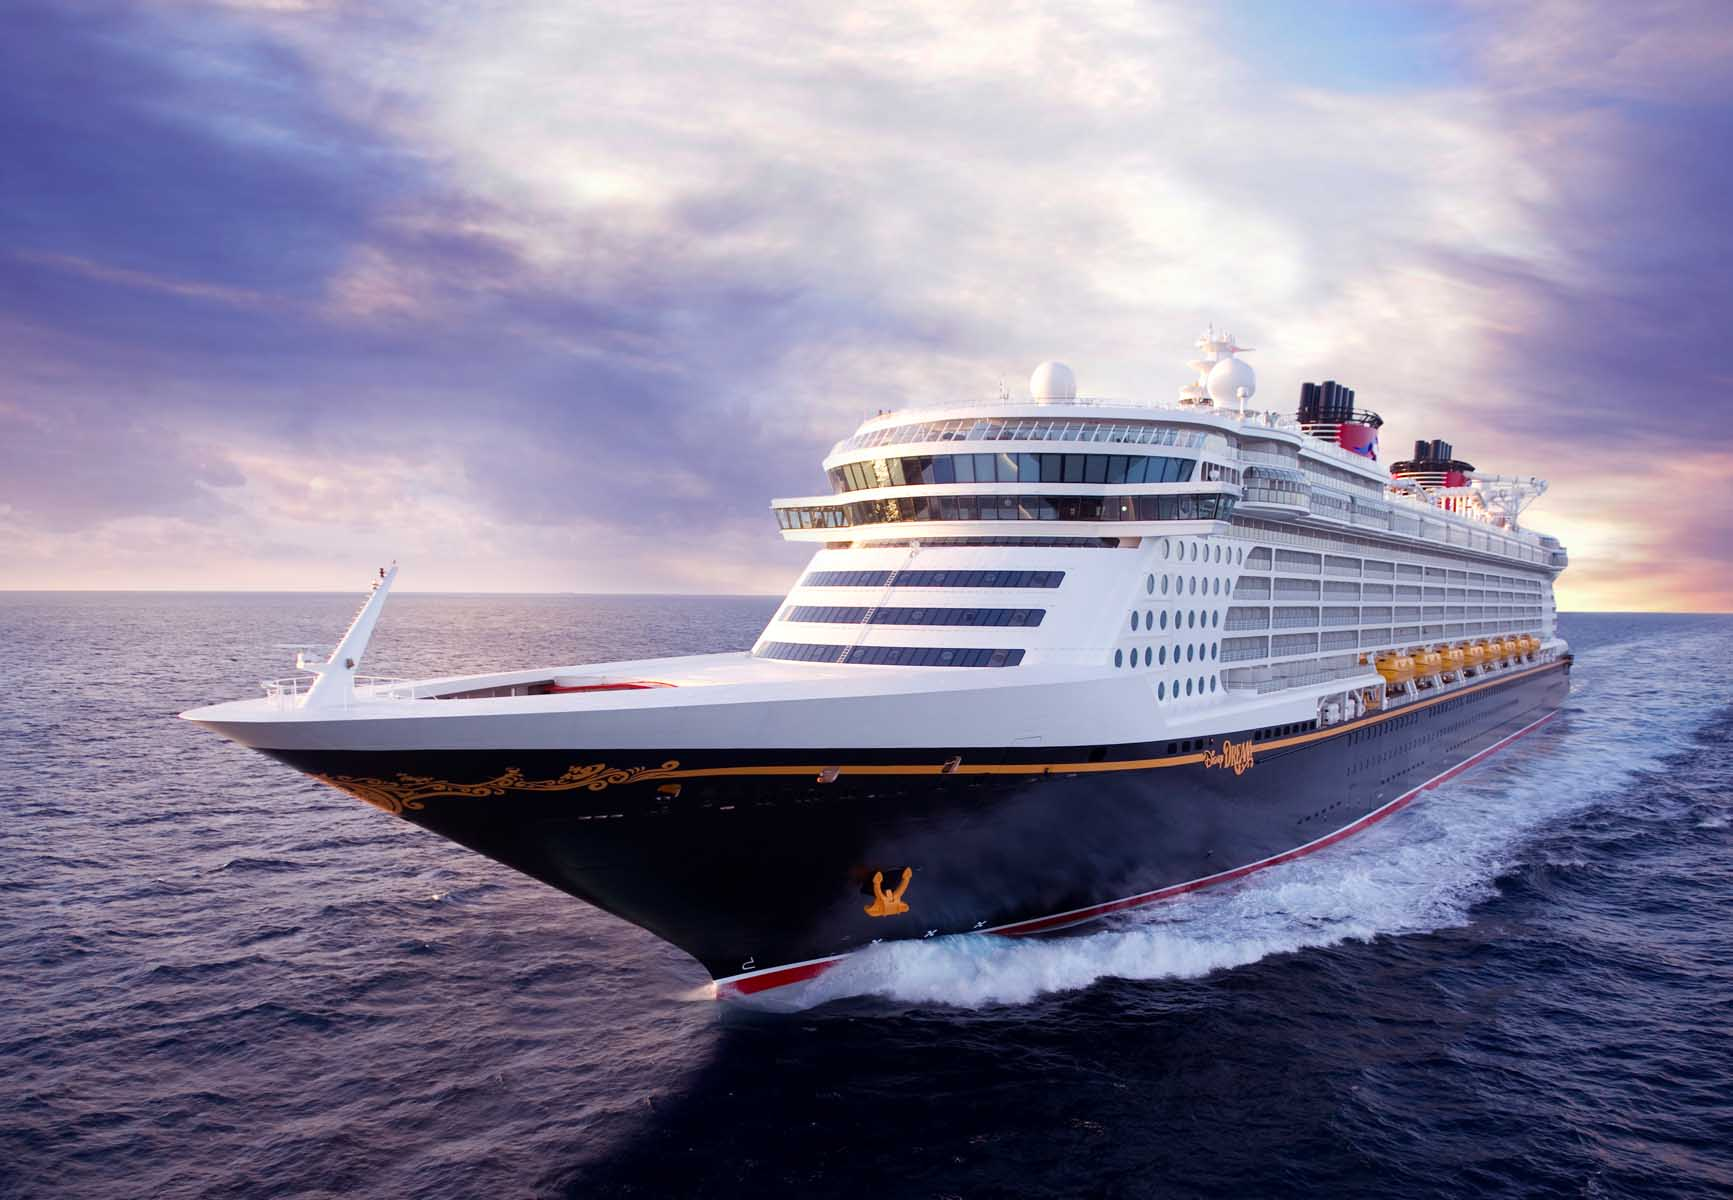 Disney Cruise Line Cruises & Reviews